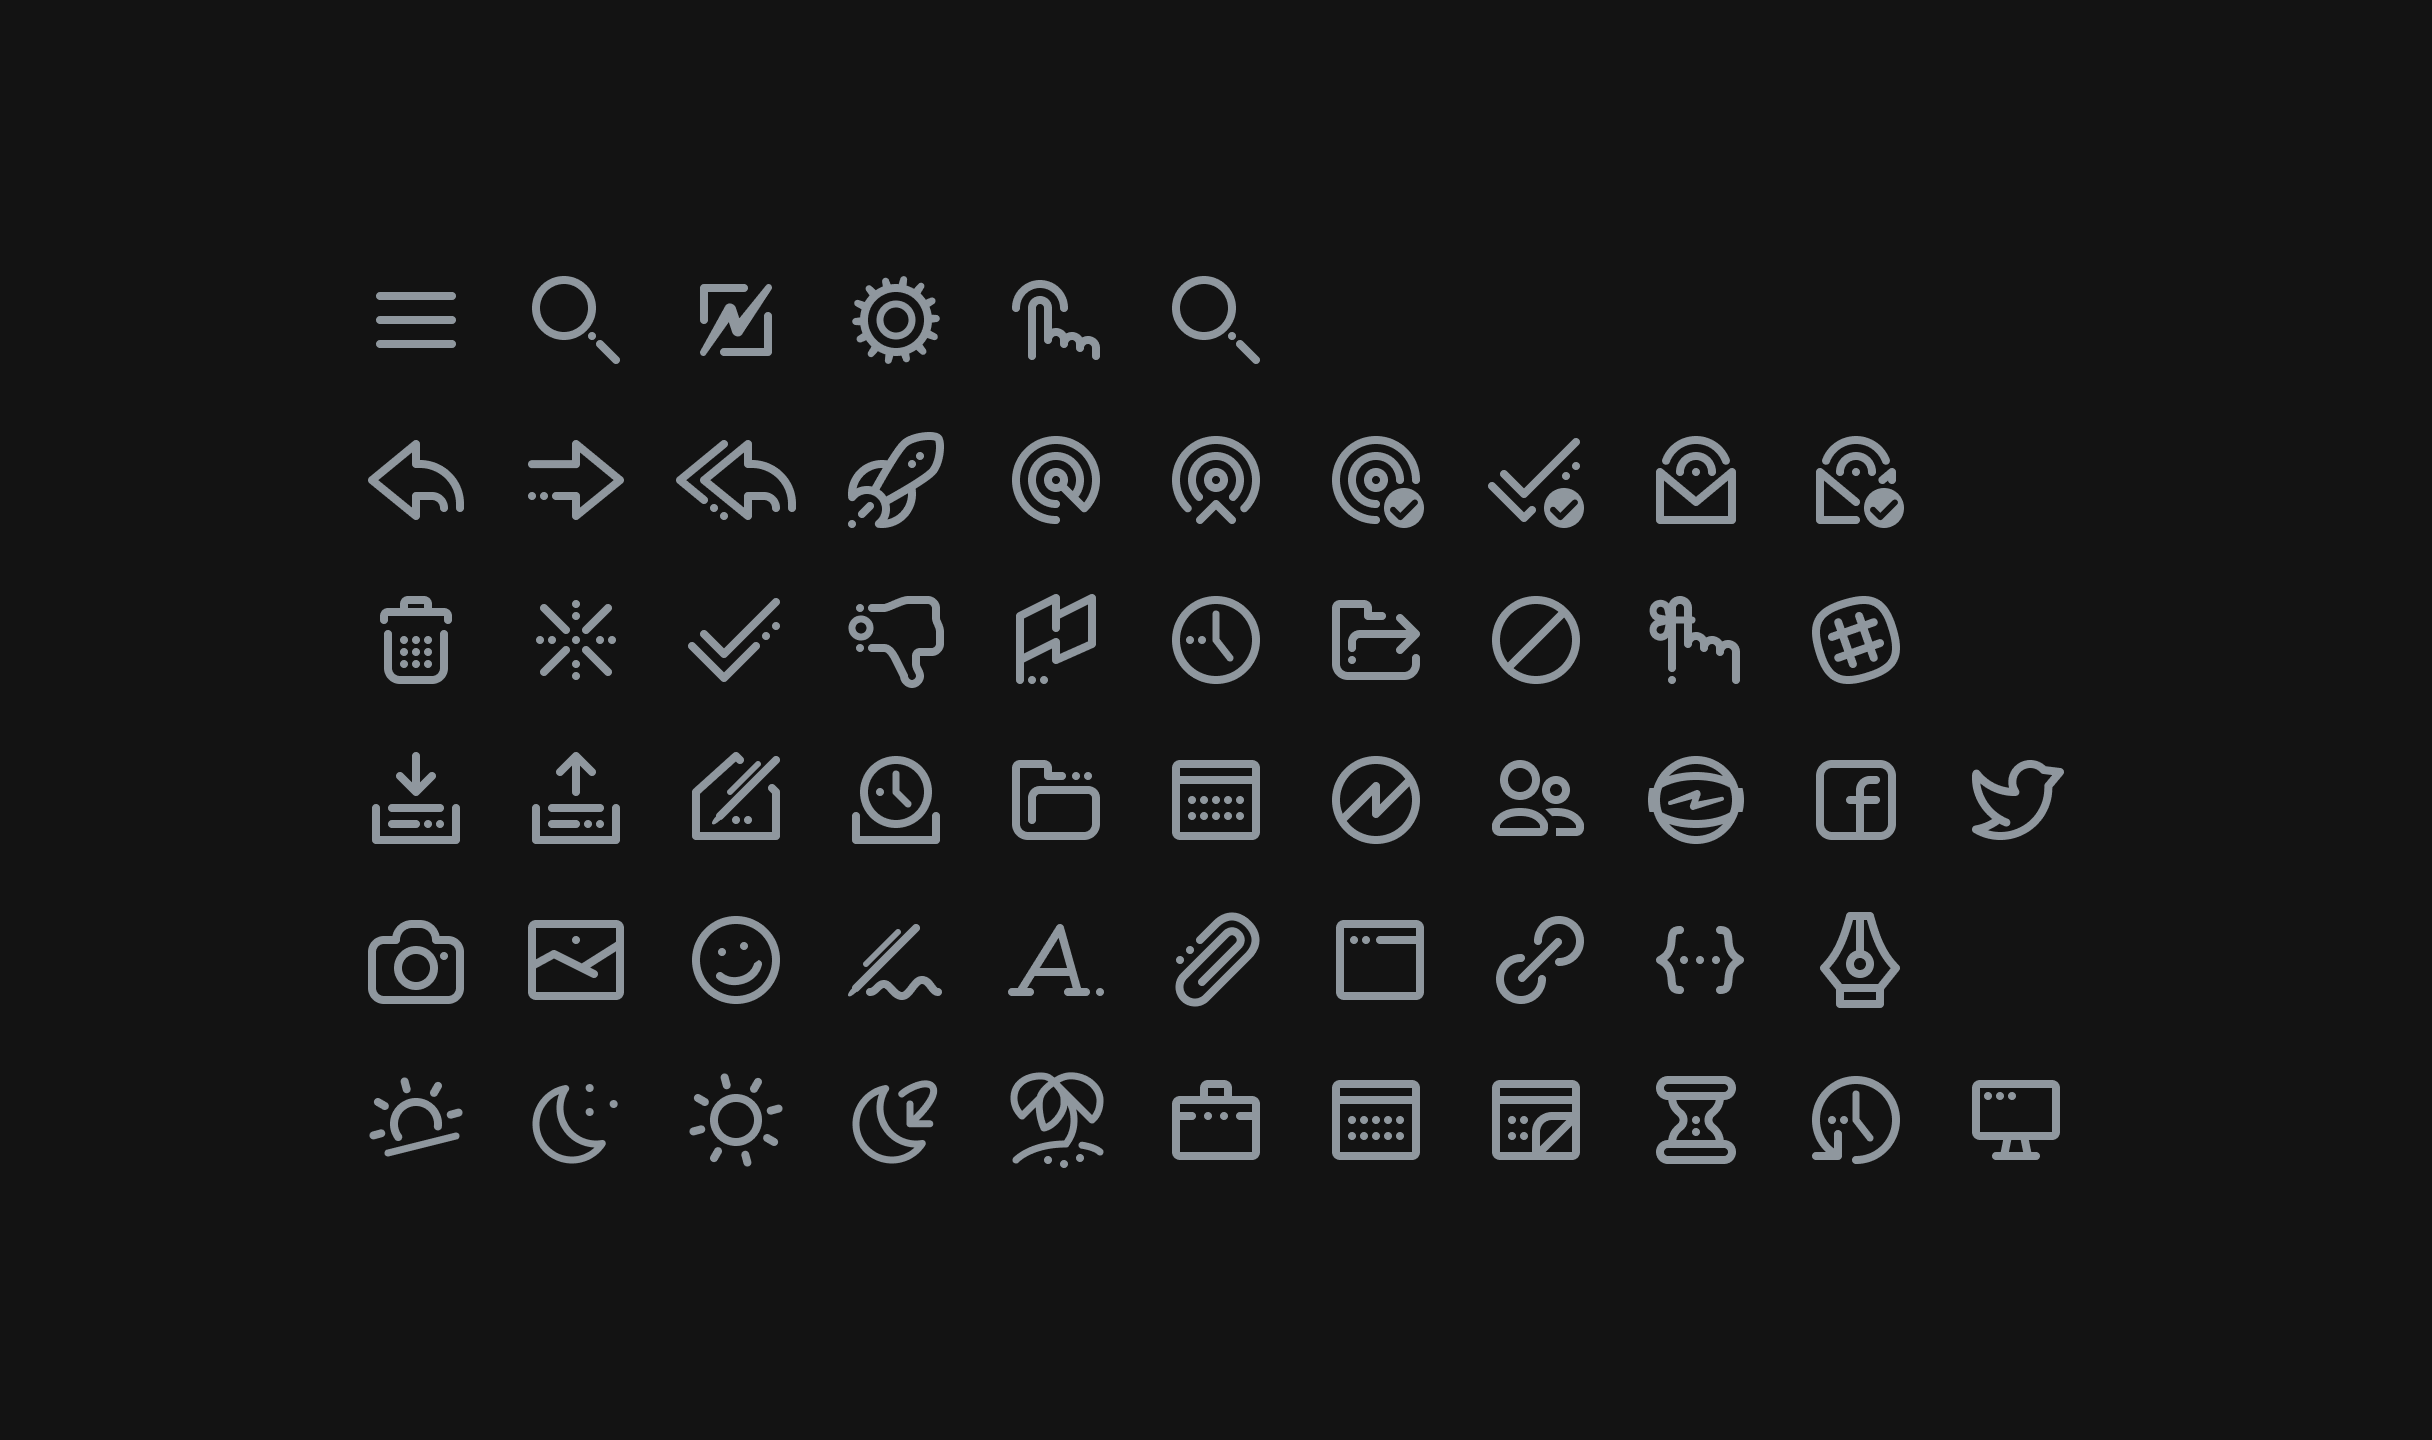 Lovely Astro interface icongraphy created by JW